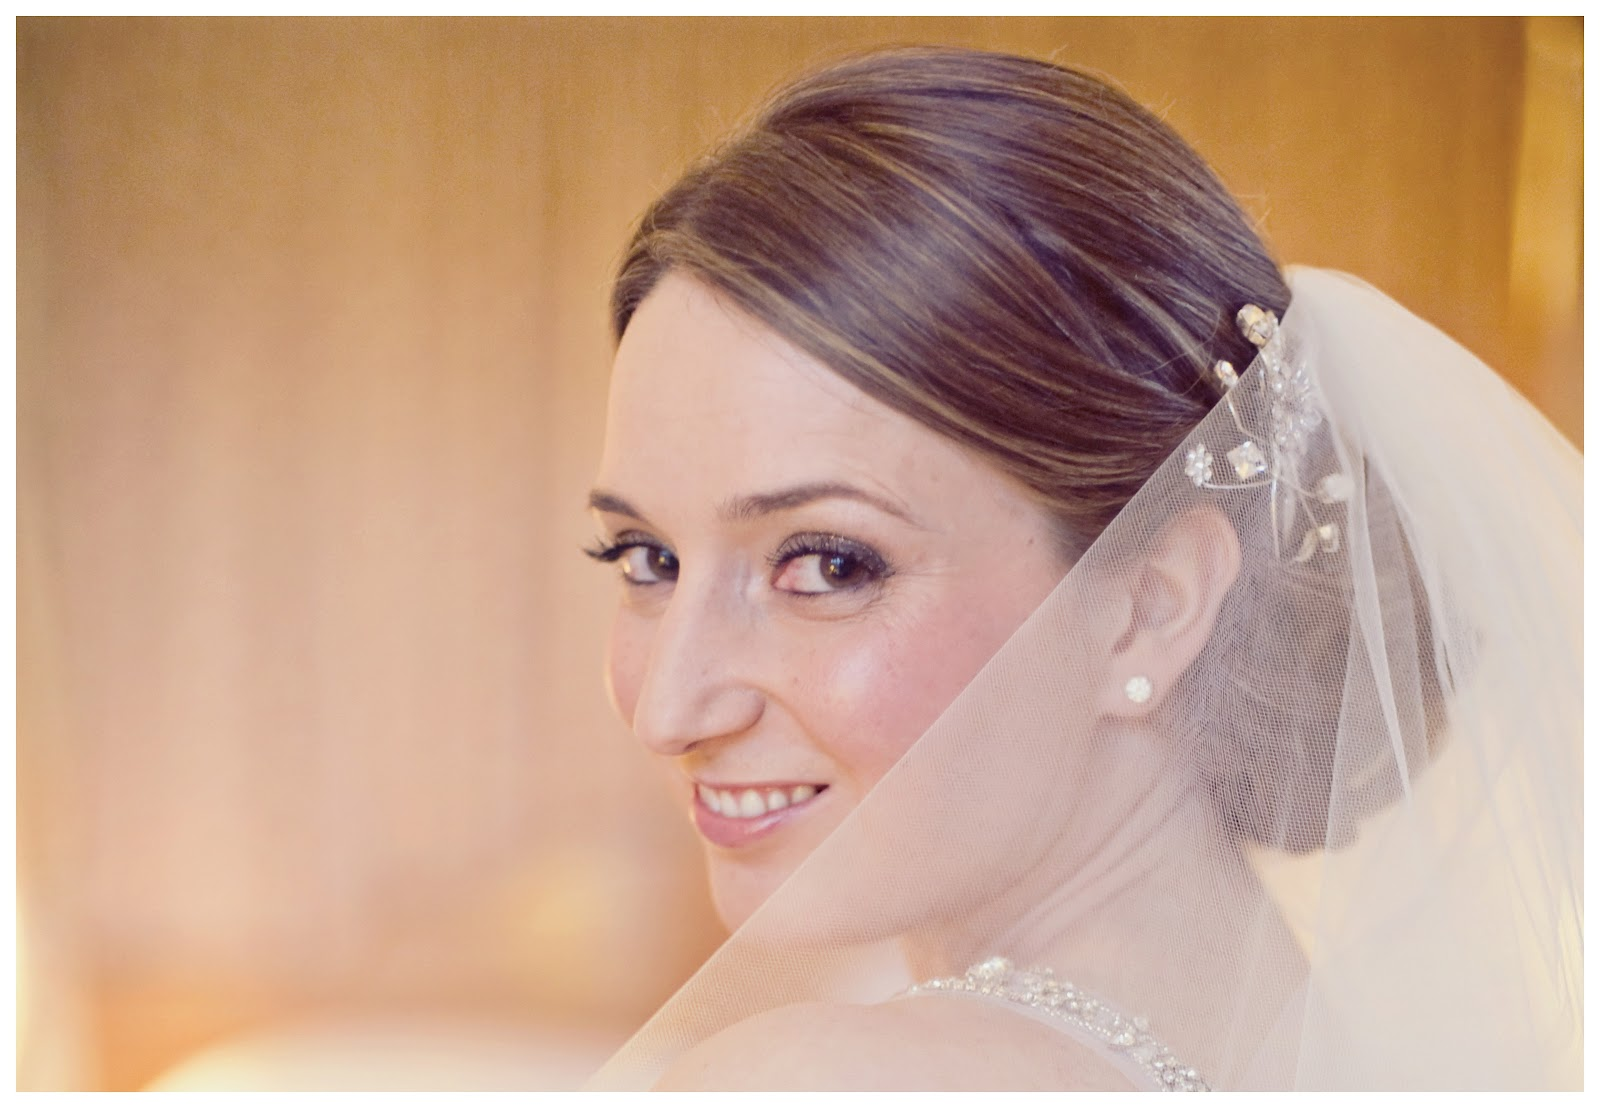 Wedding Beauty Preparation Dos And Donts